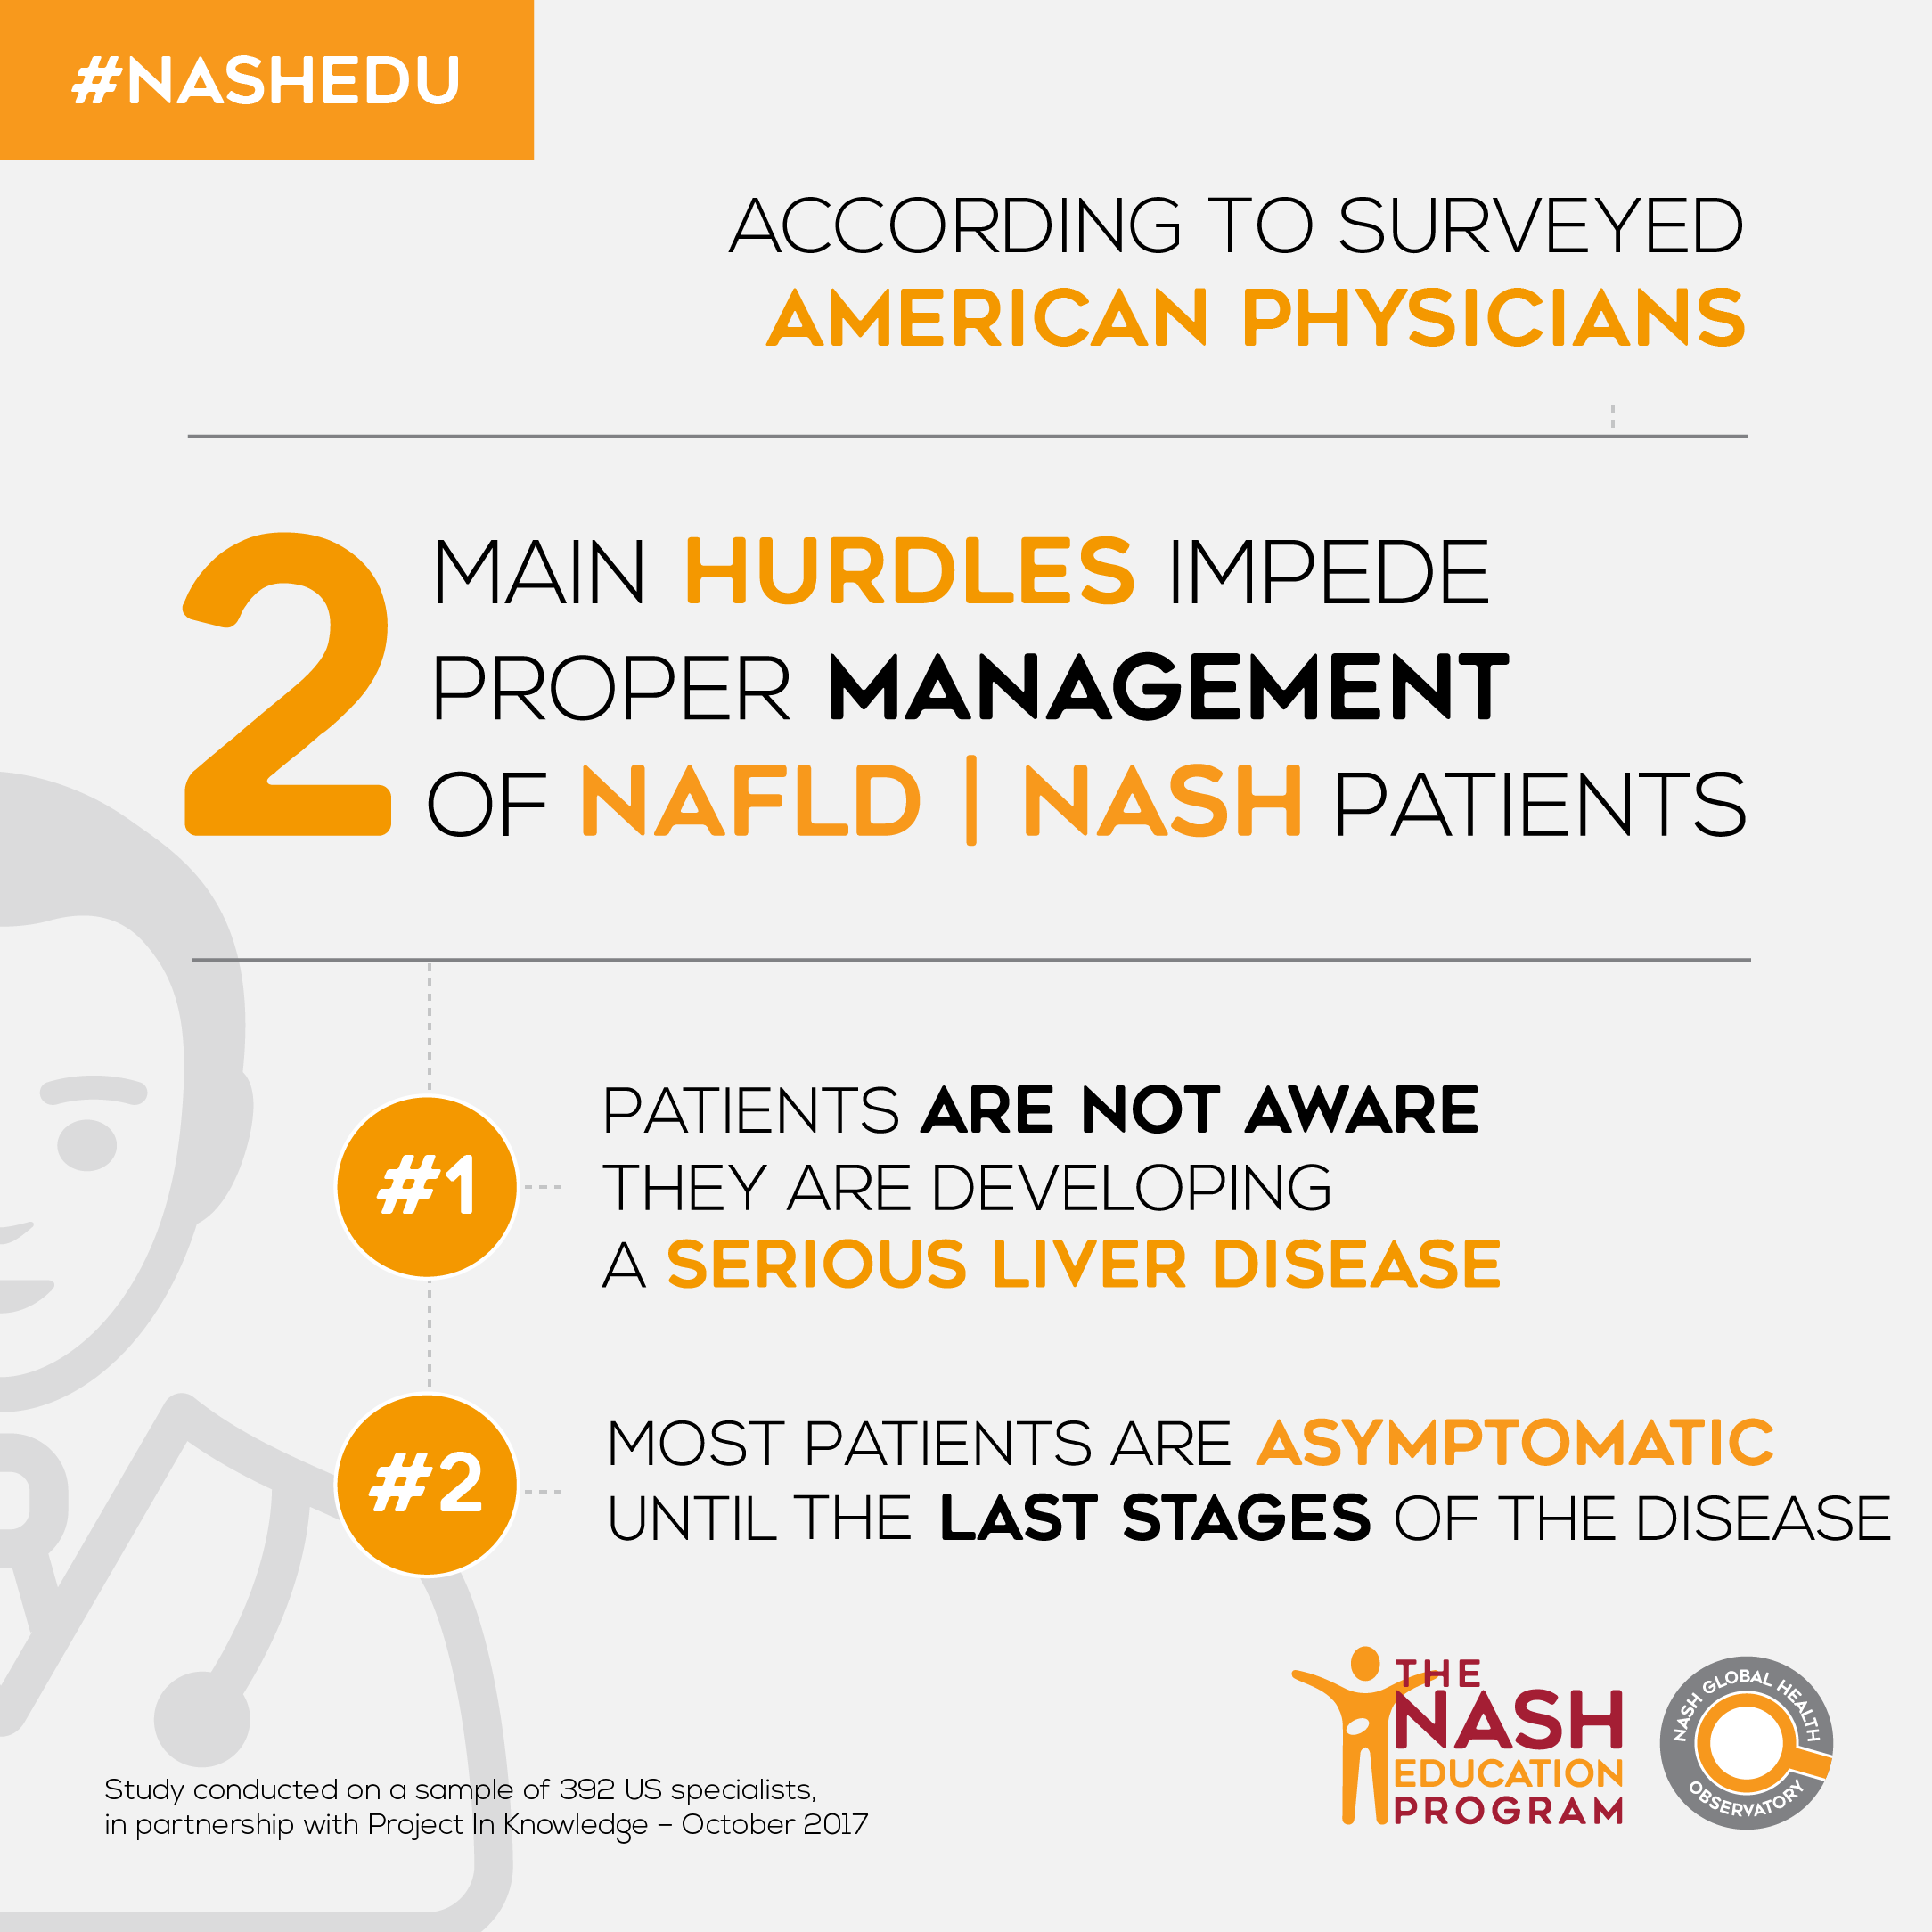 NASH-hurdles-patient-management.png